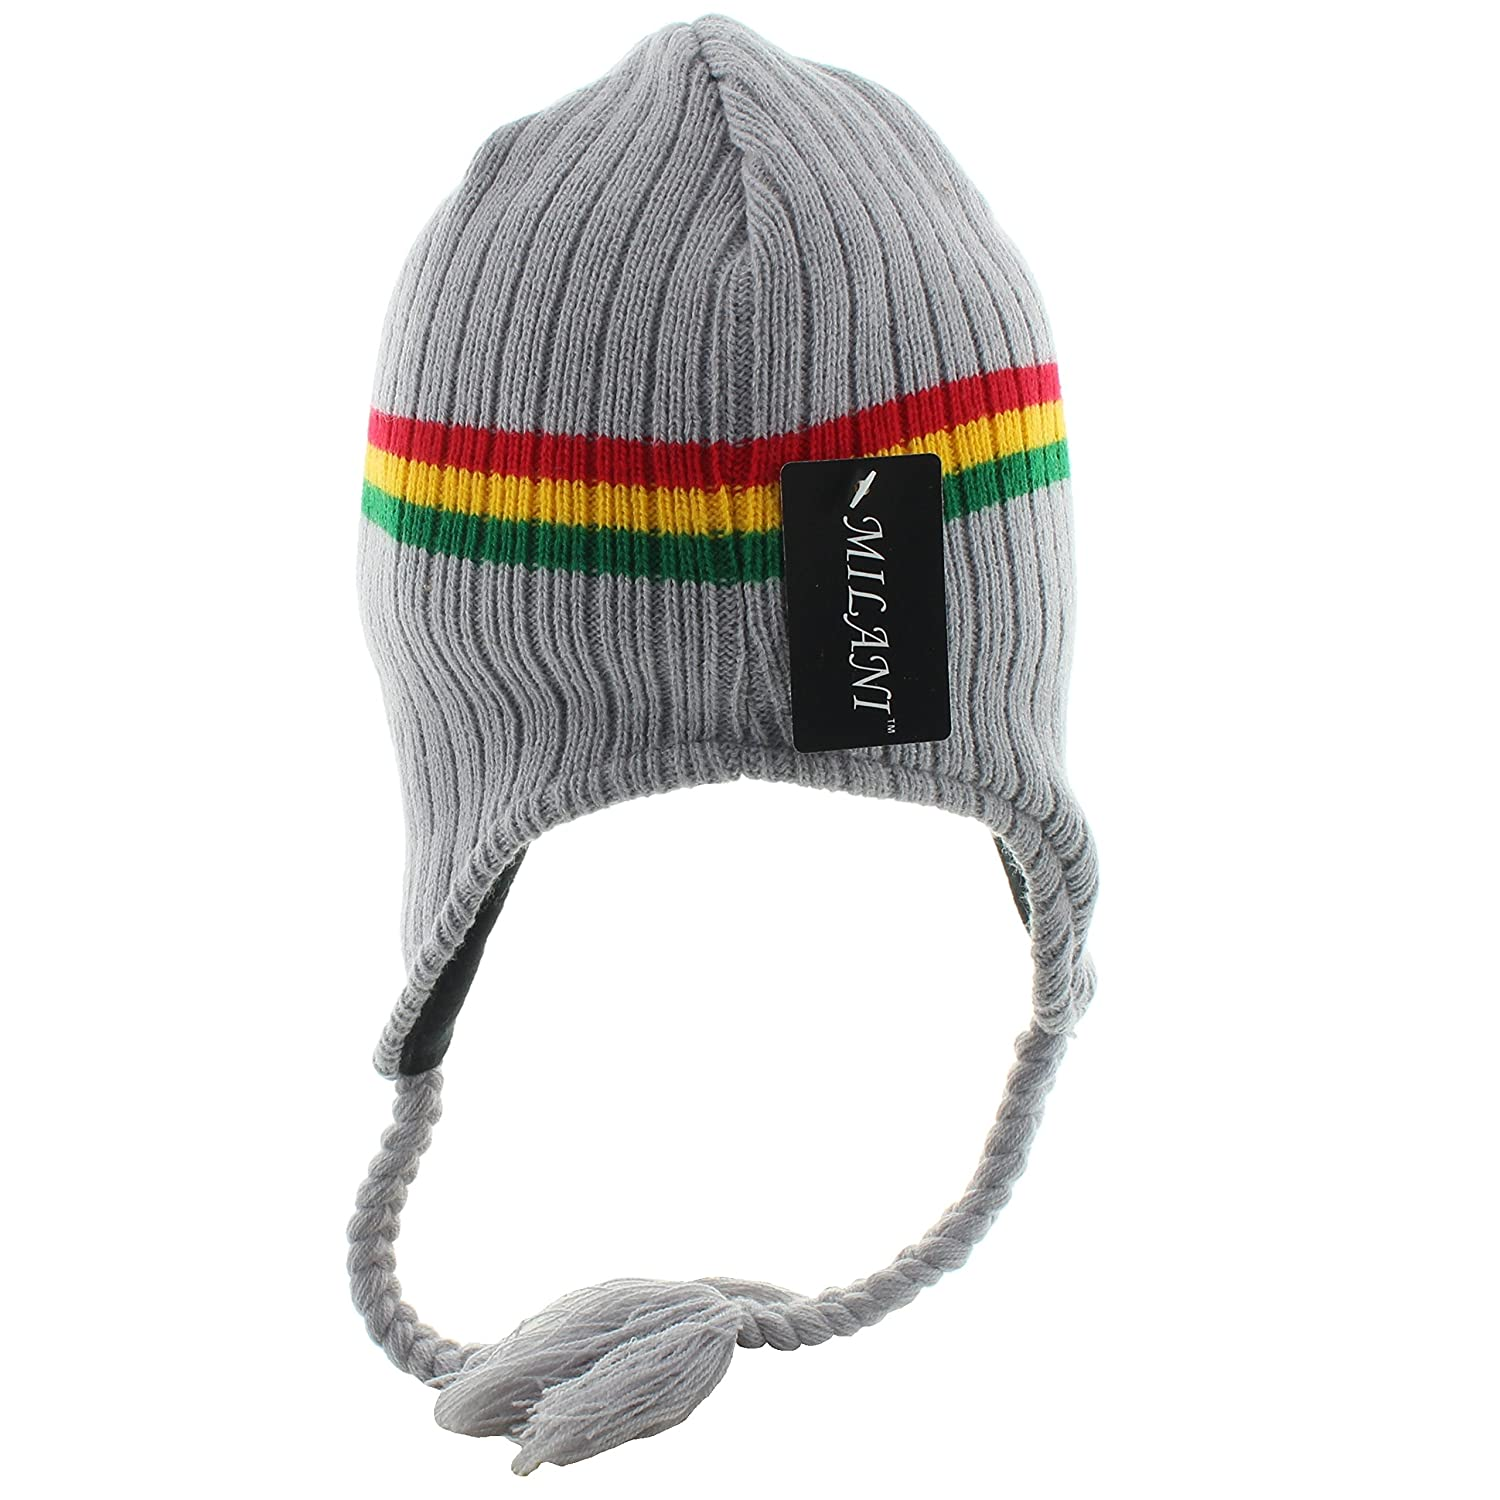 14a45899852 Amazon.com  JFH Group Rasta Hippie Jamaican Winter Ear Flap Hat (One Size)- Gray  Clothing